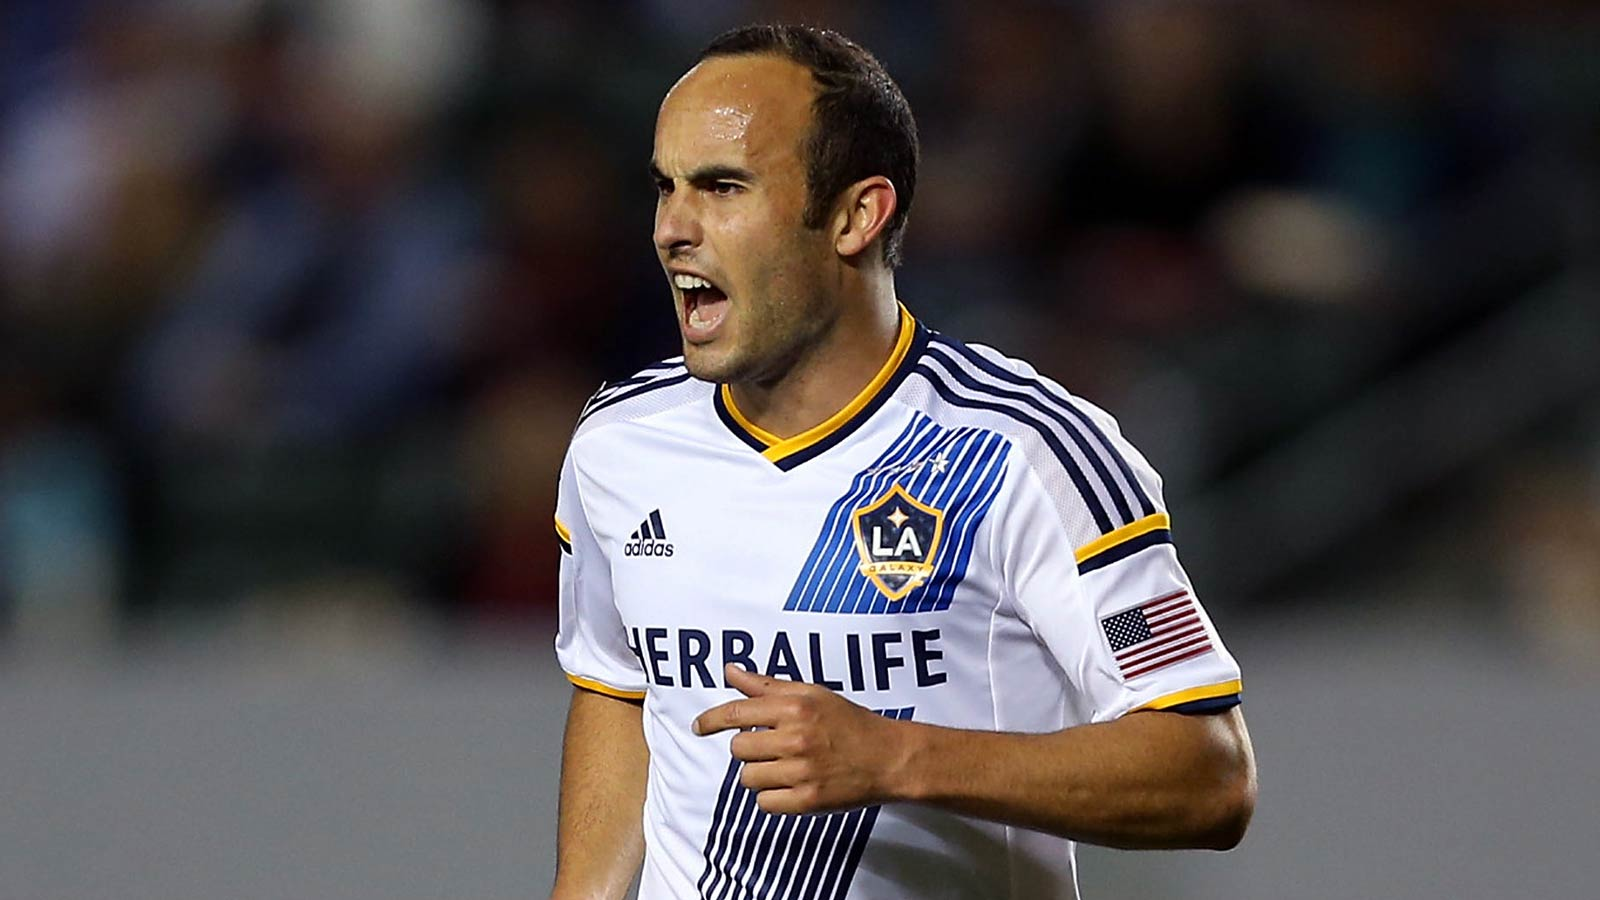 Landon Donovan officially announces his retirement from soccer